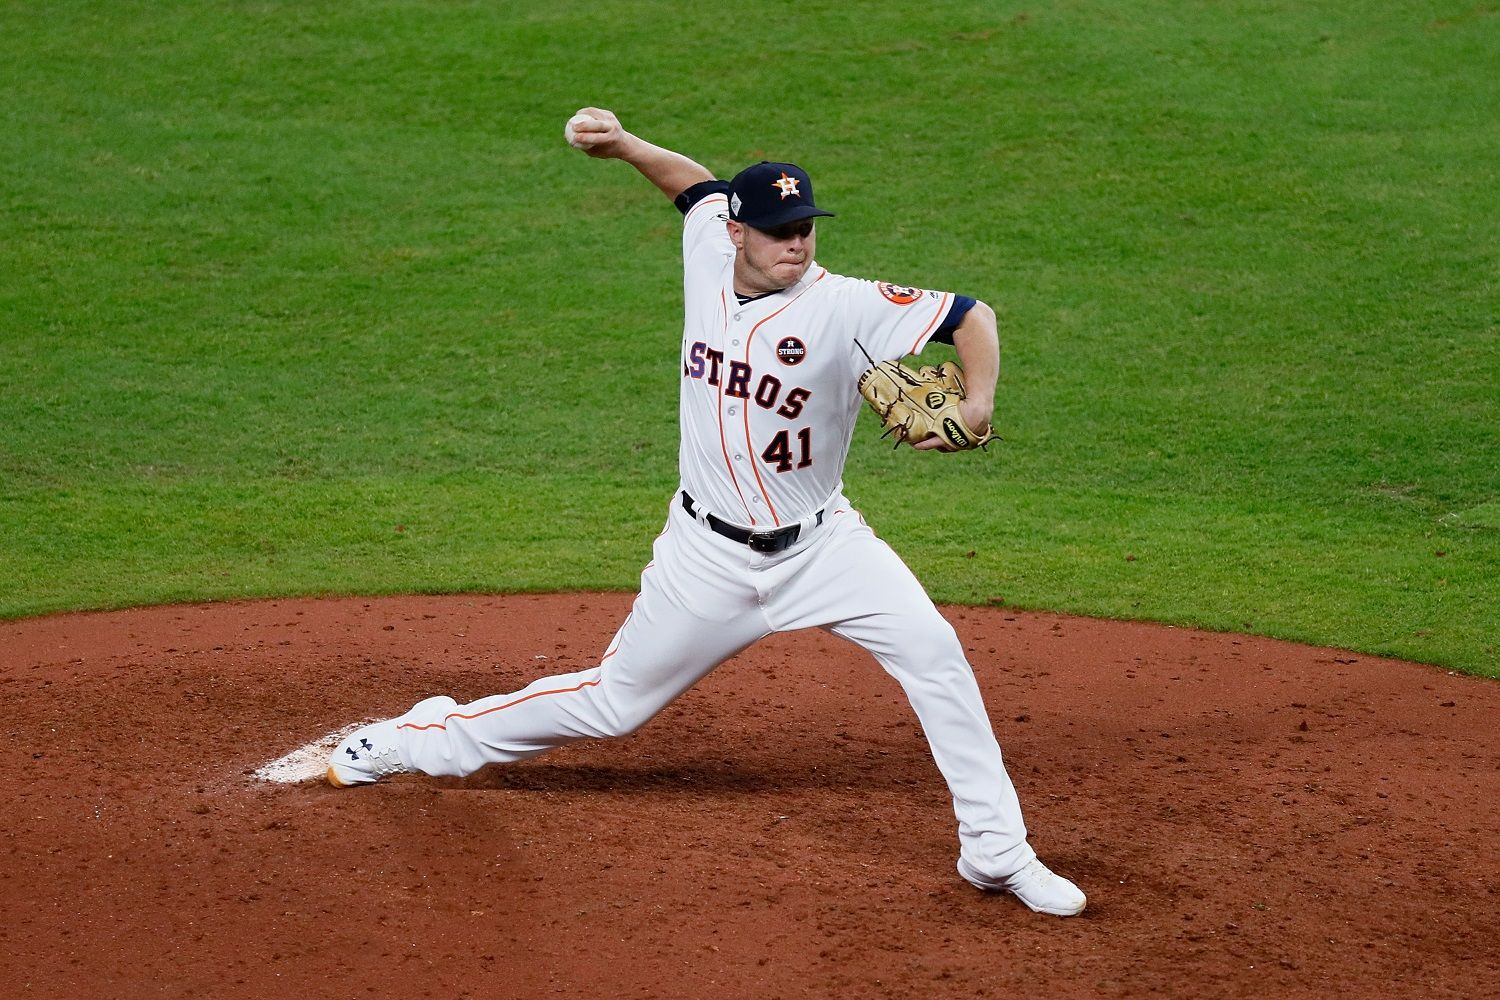 HOUSTON, TX - OCTOBER 27:  Brad Peacock #41 of the Houston Astros throws a pitch against the Los Angeles Dodgers in game three of the 2017 World Series at Minute Maid Park on October 27, 2017 in Houston, Texas.  (Photo by Jamie Squire/Getty Images)